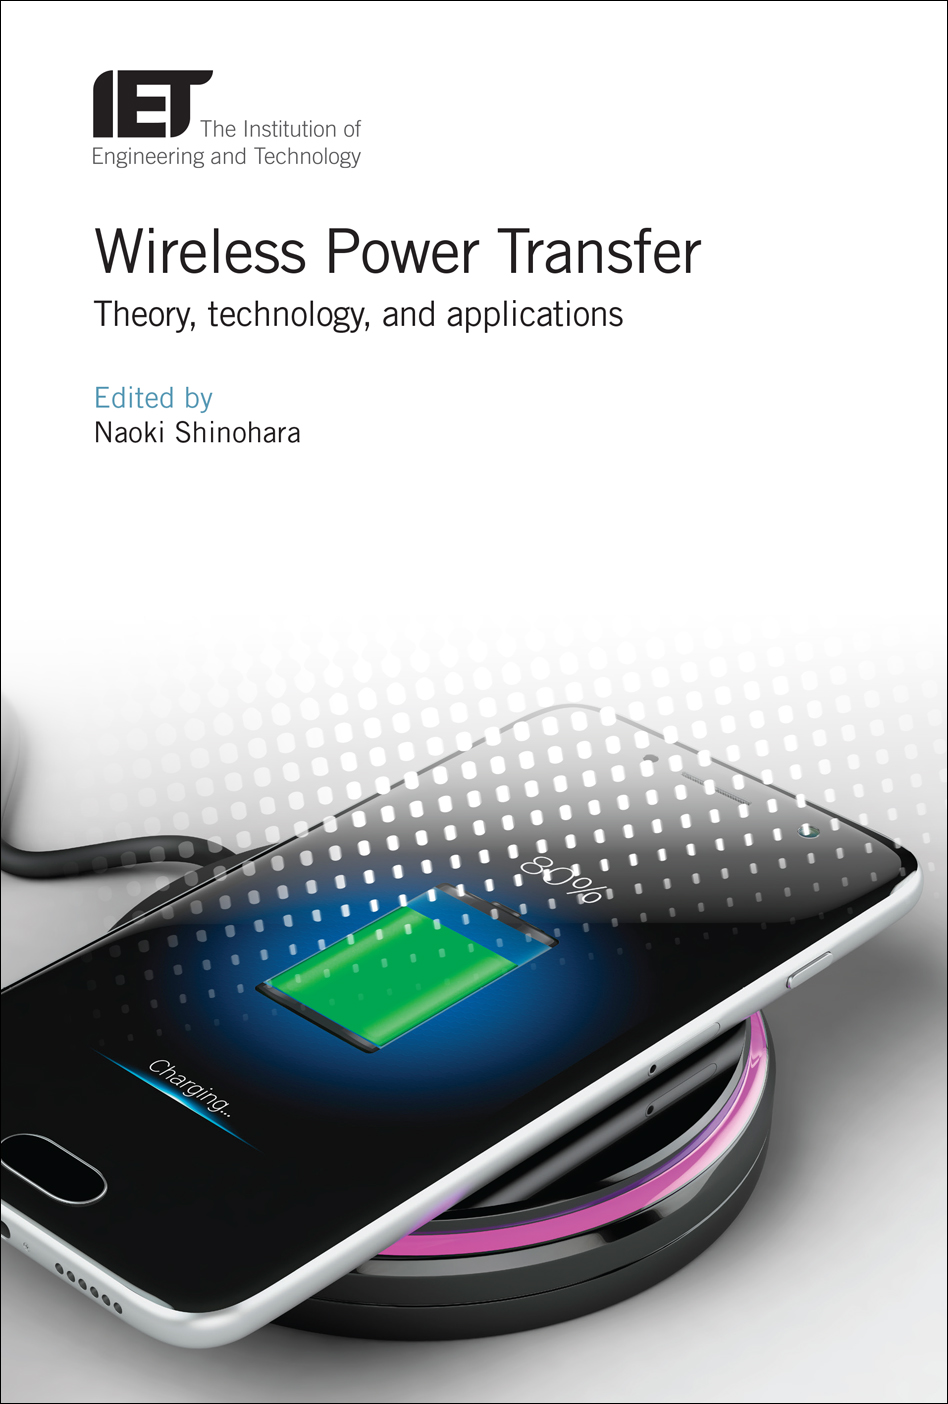 Wireless Power Transfer, Theory, technology, and applications